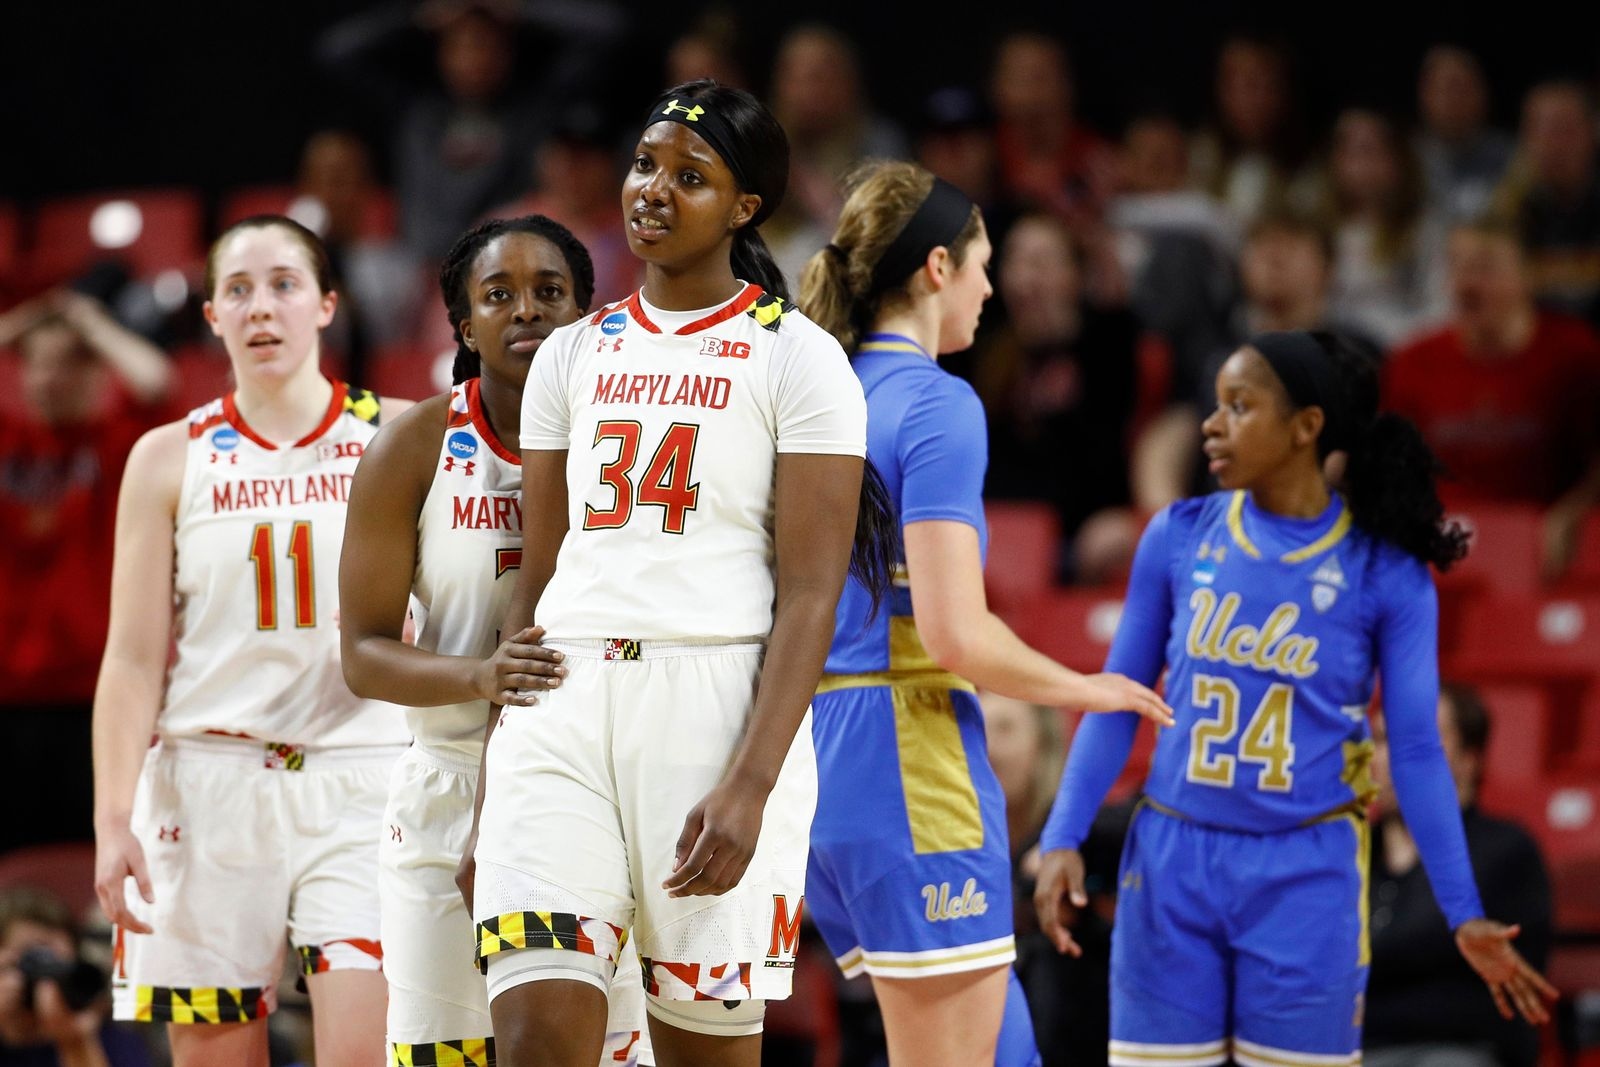 Maryland forward Brianna Fraser (34) reacts alongside teammates Taylor Mikesell (11) and Channise Lewis after being called for a foul during the second half of a second-round game against UCLA in the NCAA women's college basketball tournament, Monday, March 25, 2019, in College Park, Md. UCLA won 85-80. (AP Photo/Patrick Semansky)